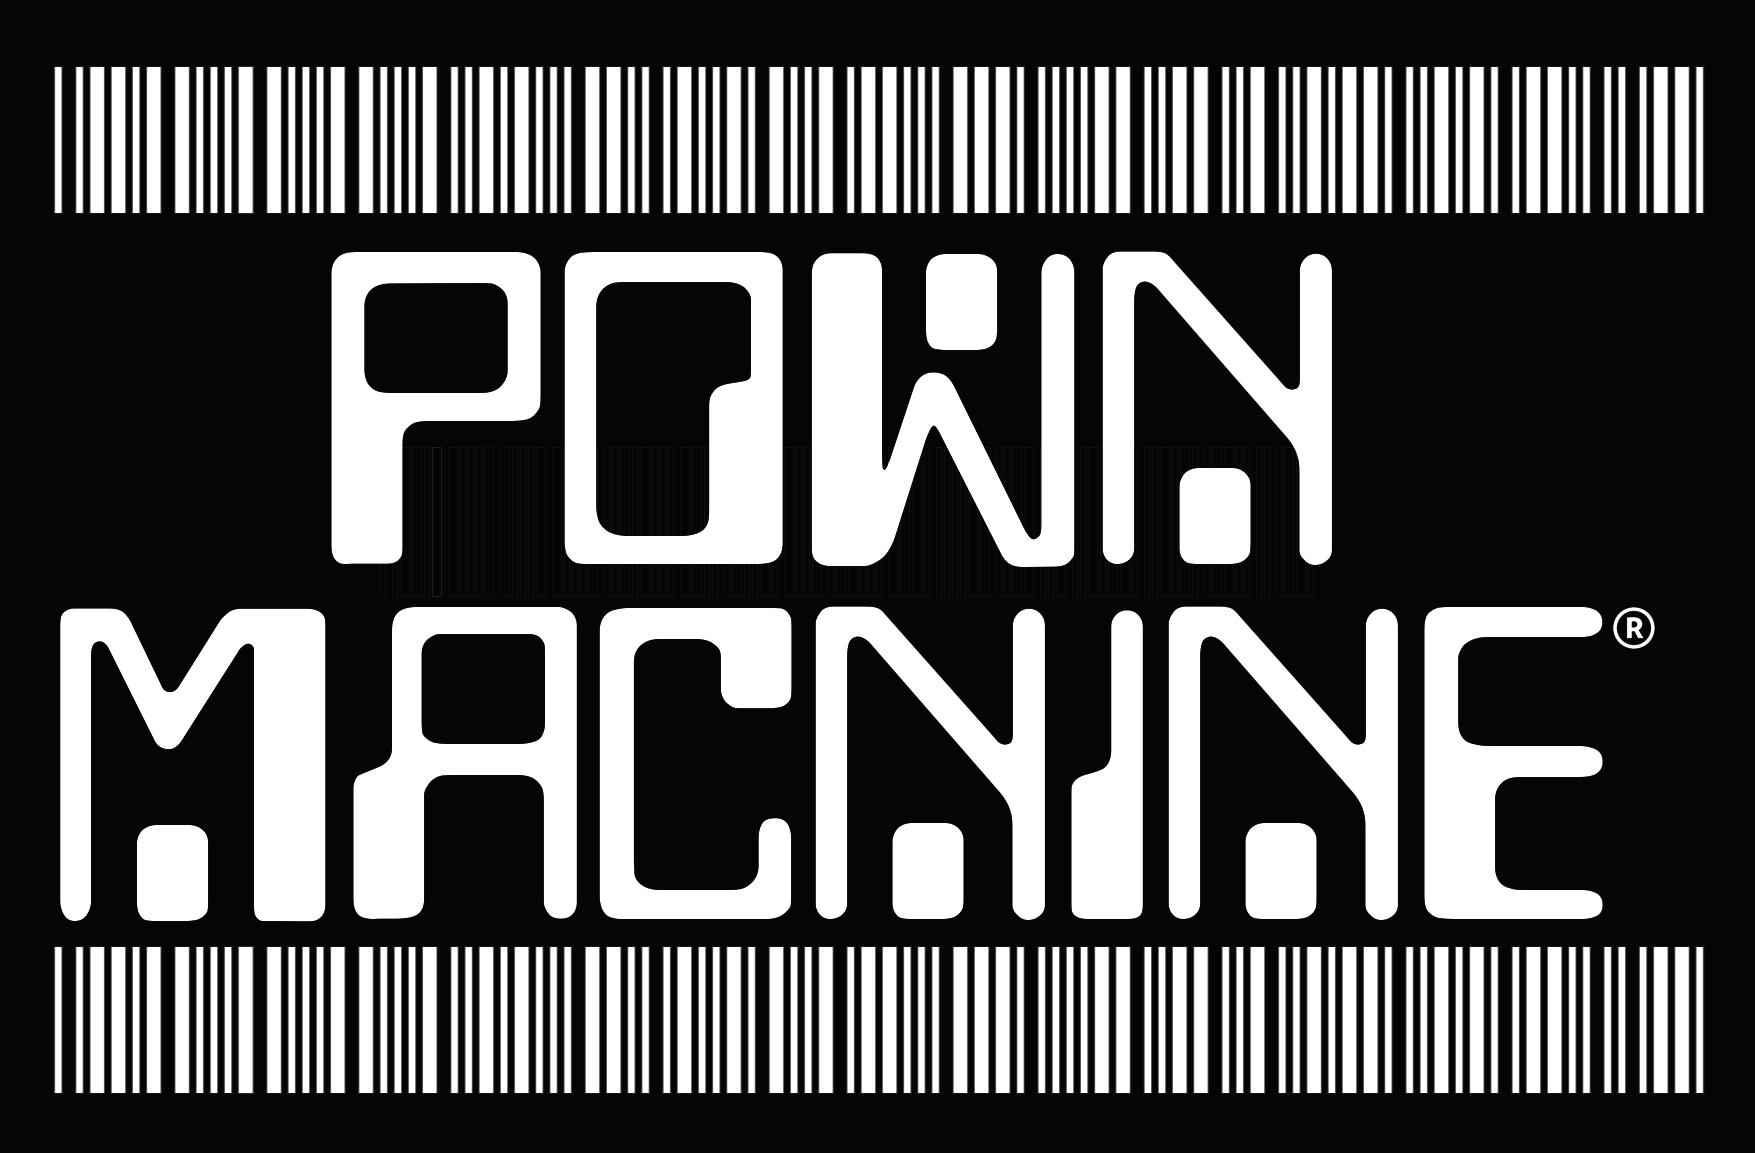 pown machine logo